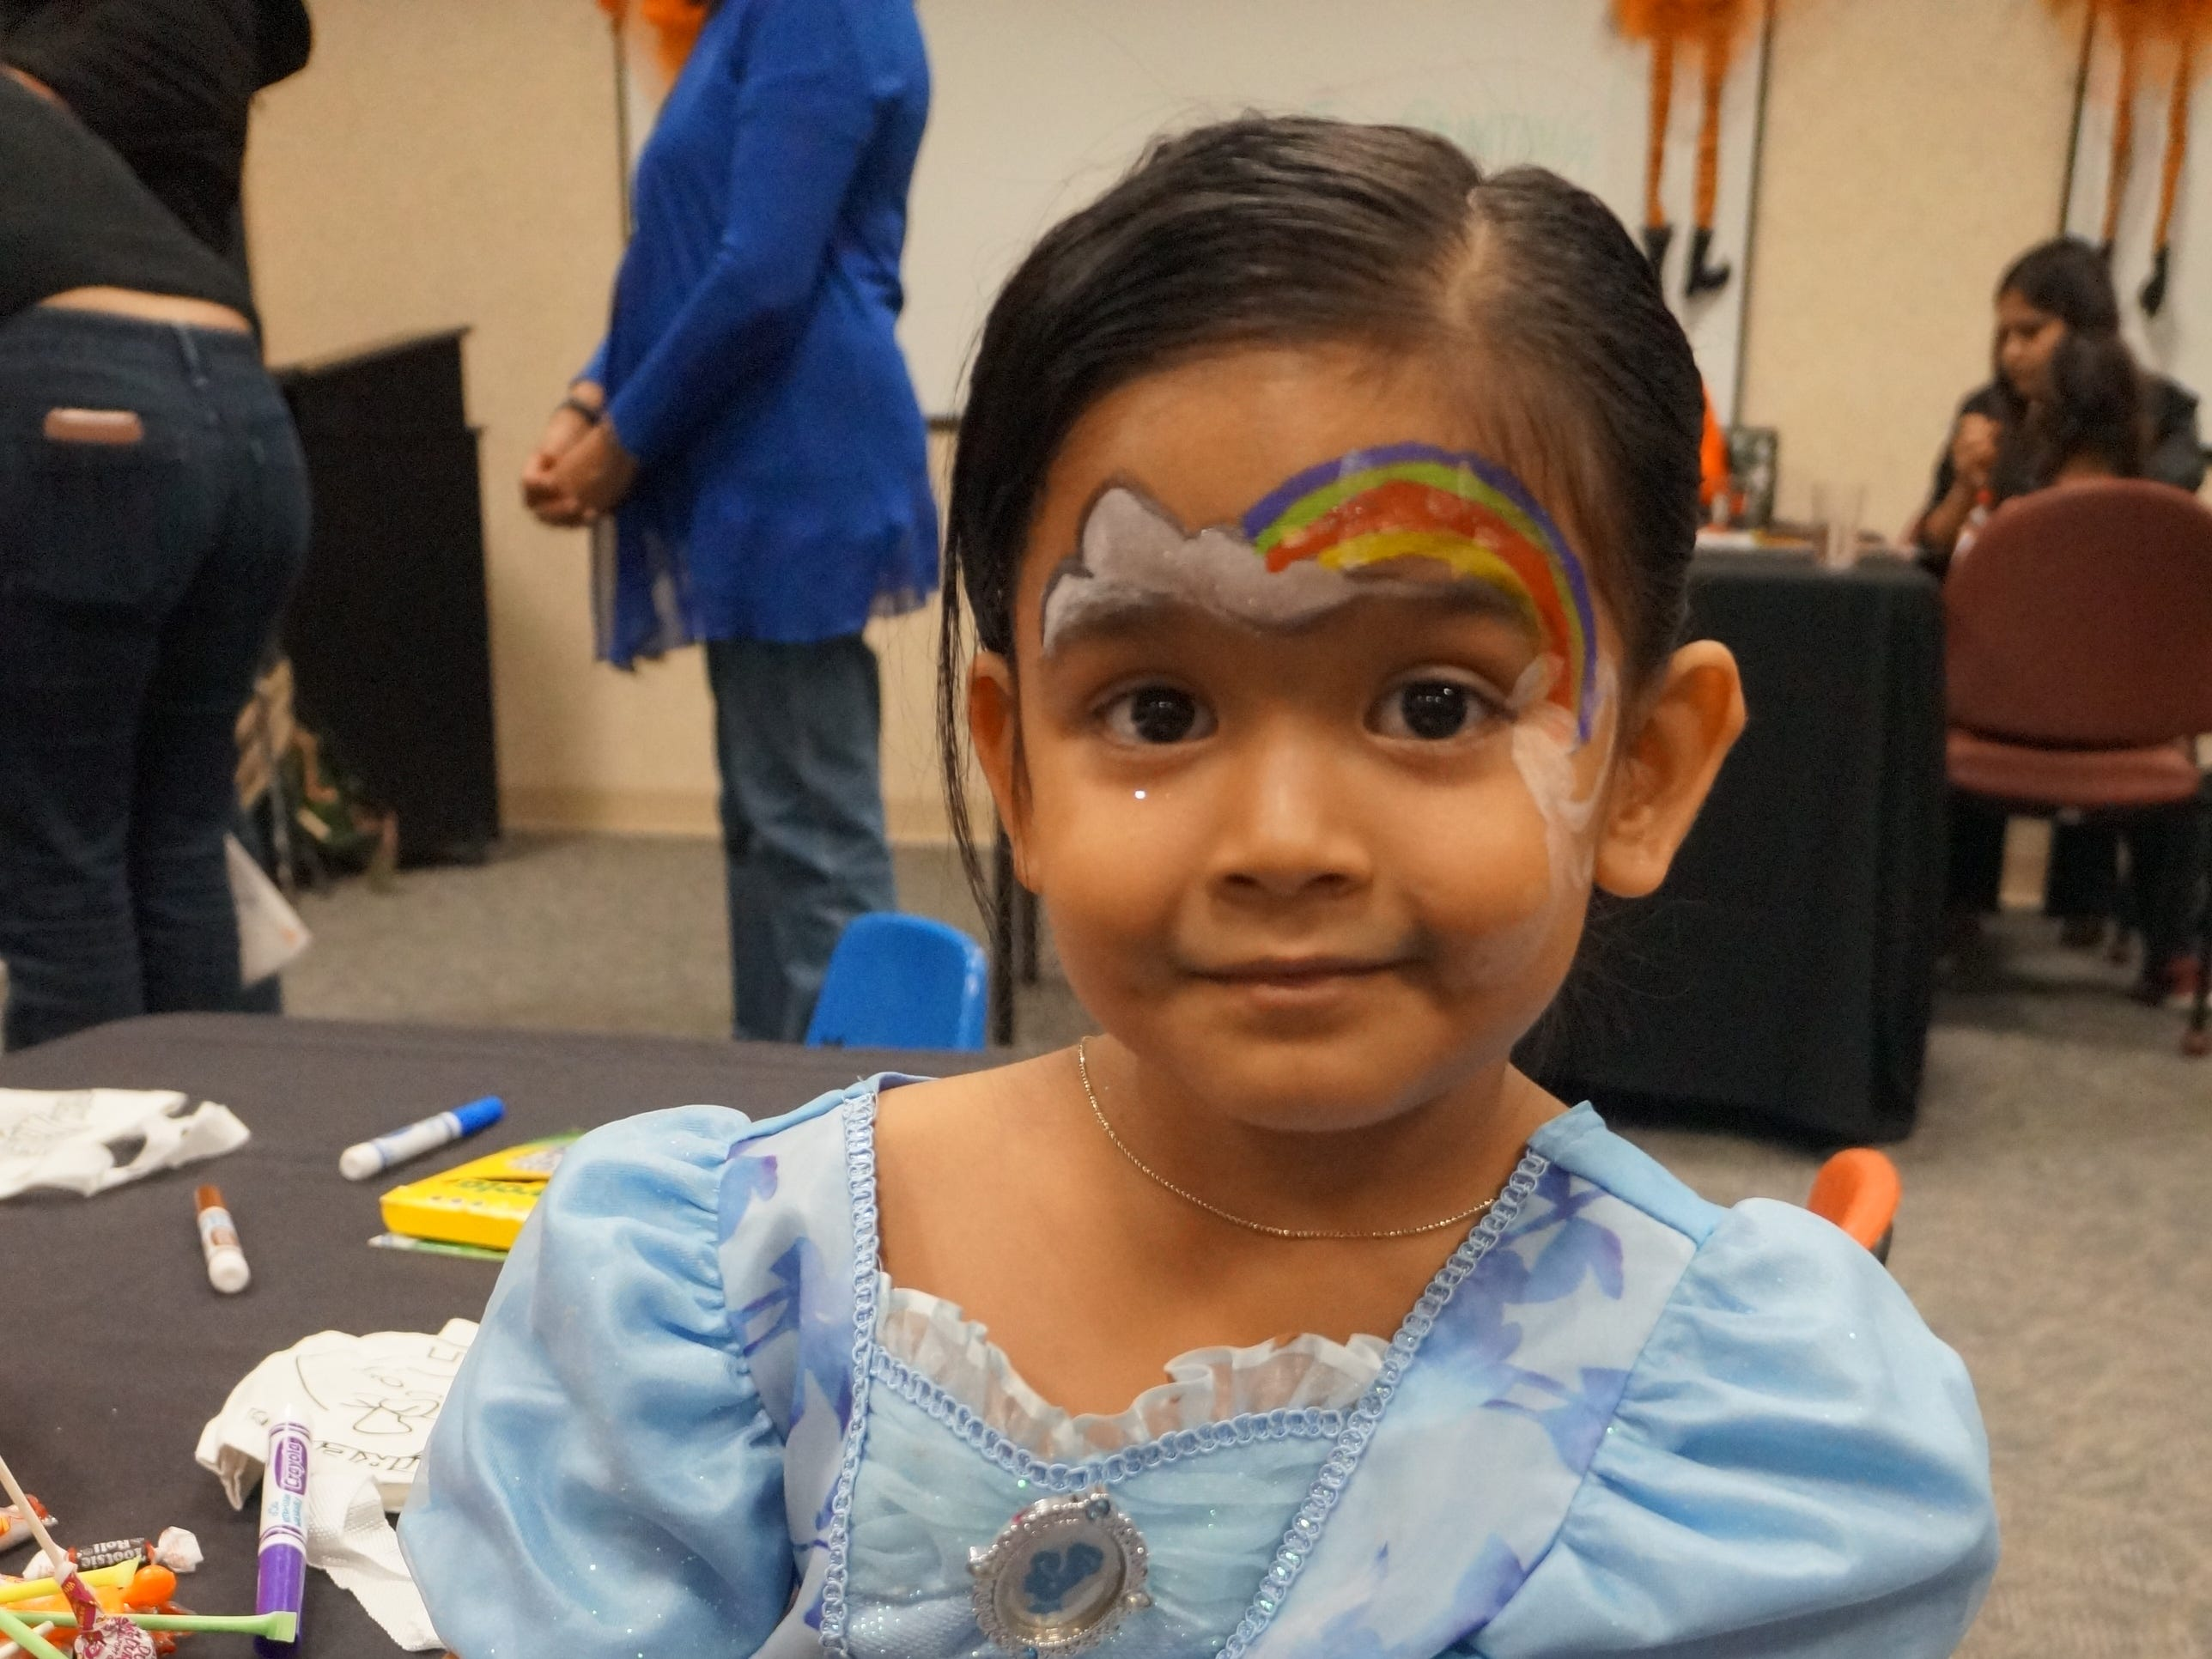 Memorial Medical Center in Las Cruces was host to a reunion of children who had been helped by the hospital's neonatal intensive care unit. Children came dressed in costume for the second NICU Reunion Carnival, held Tuesday, Oct. 30. The children, parents and hospital staff enjoyed food and games for the afternoon.